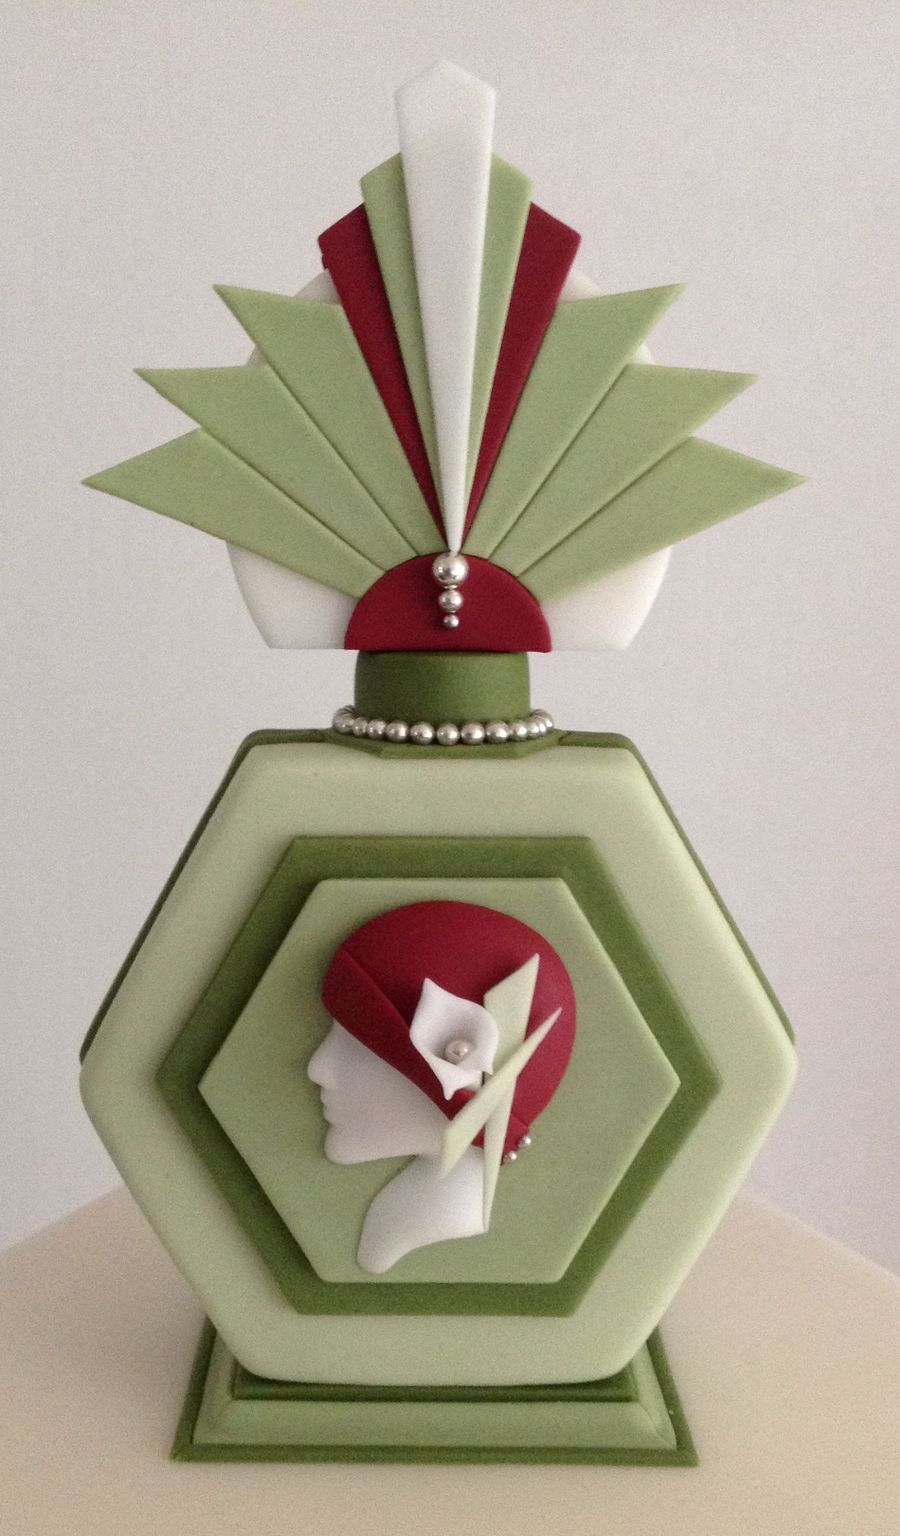 Art Deco Cake Decorations : Art Deco Cake Topper - CakeCentral.com